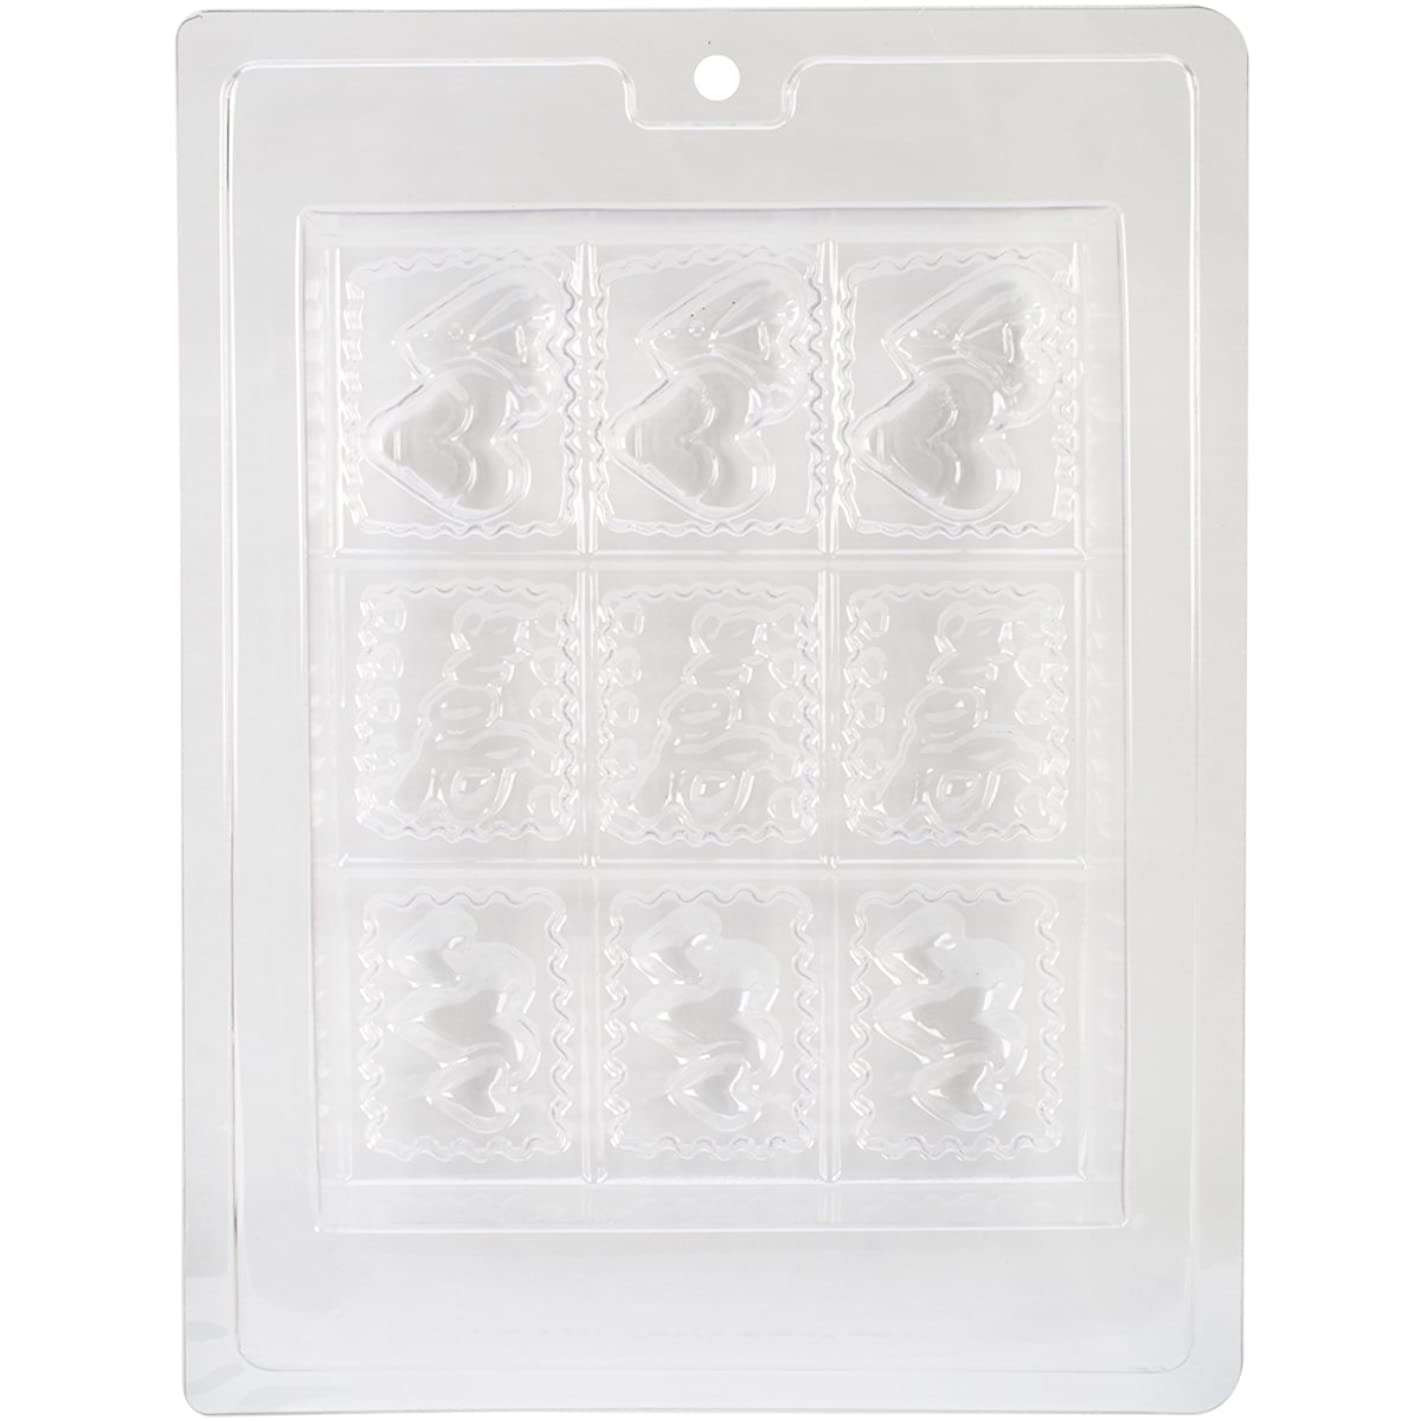 Soap Tray Mold-Love Theme